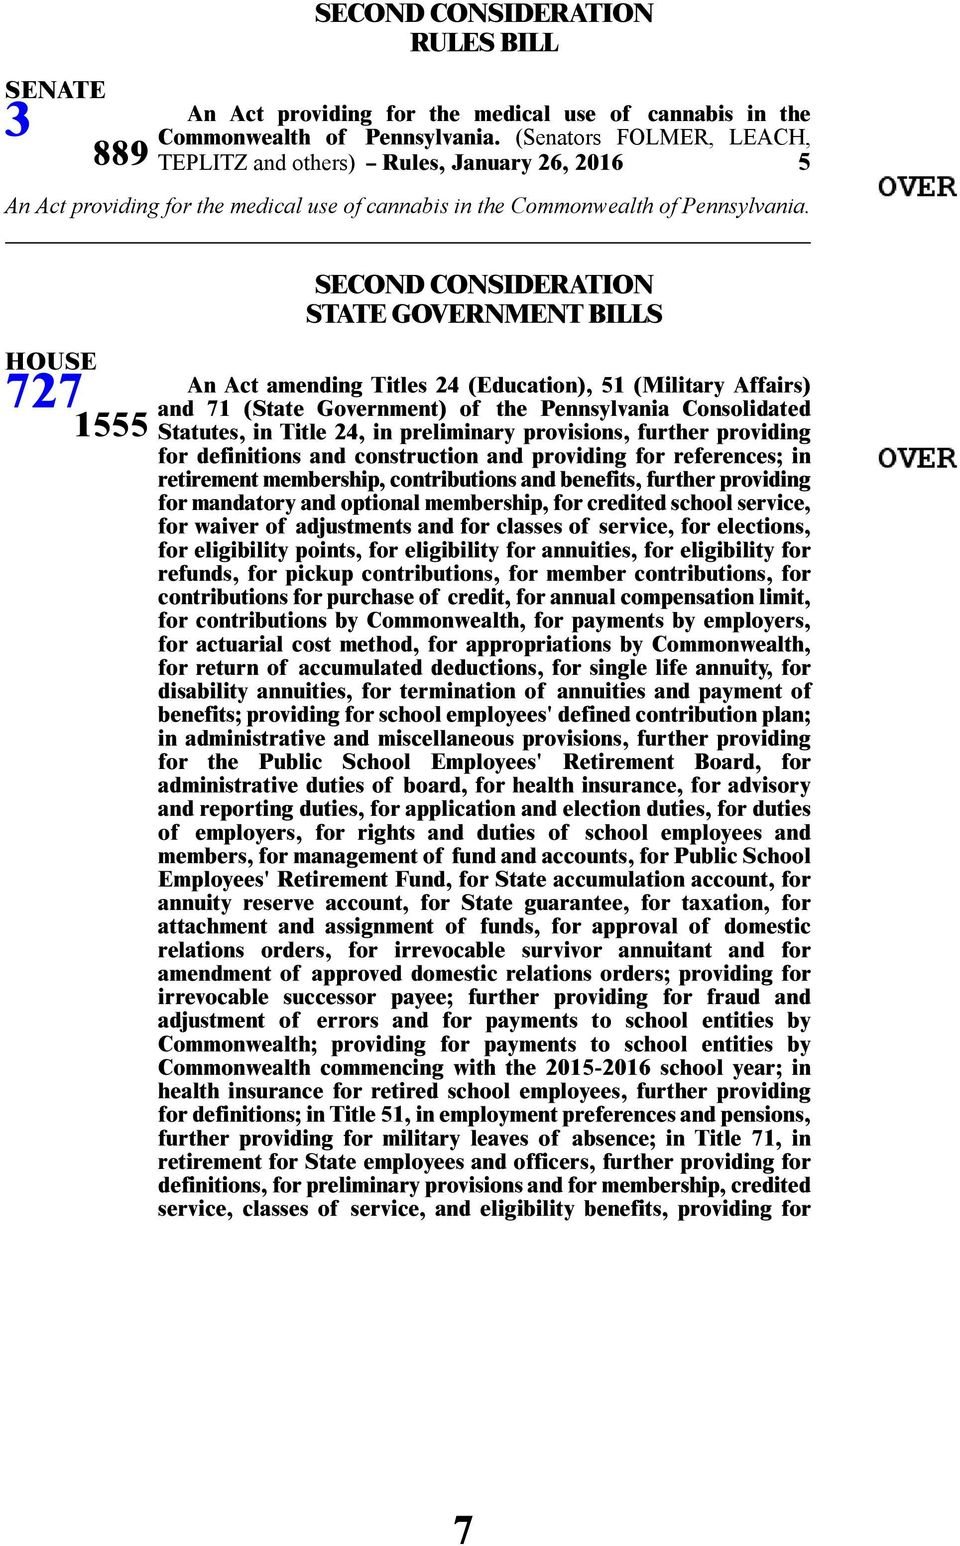 727 1555 STATE GOVERNMENT BILLS An Act amending Titles 24 (Education), 51 (Military Affairs) and 71 (State Government) of the Pennsylvania Consolidated Statutes, in Title 24, in preliminary